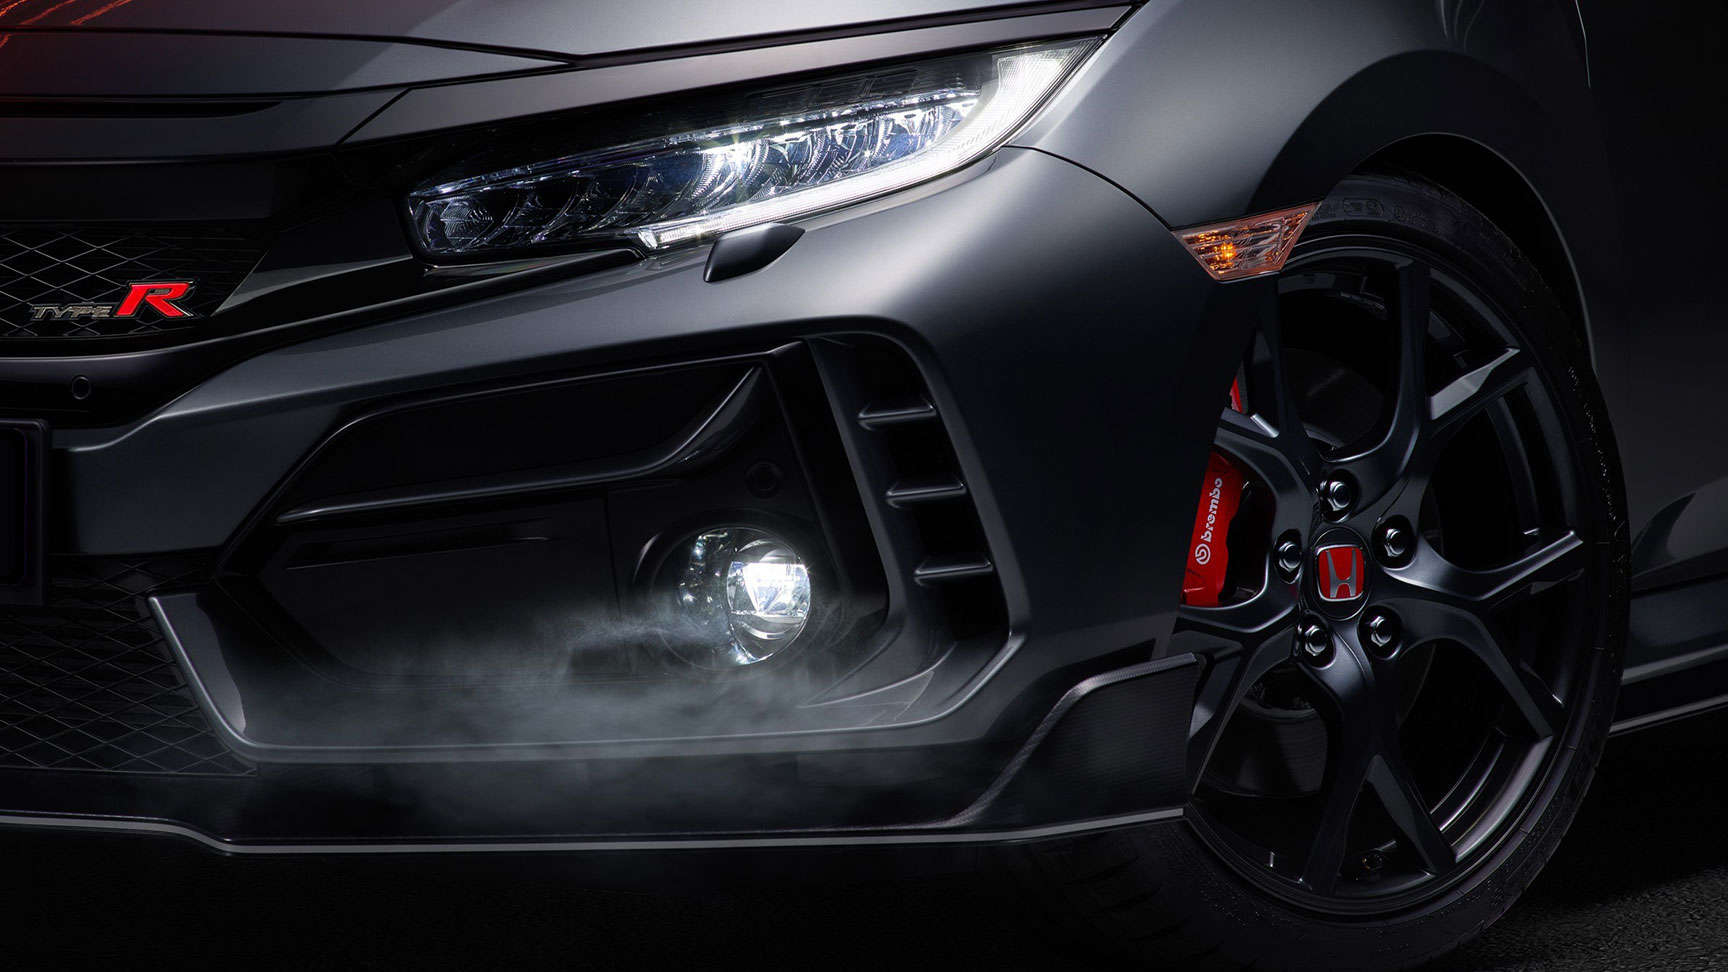 Close up of Type R headlights